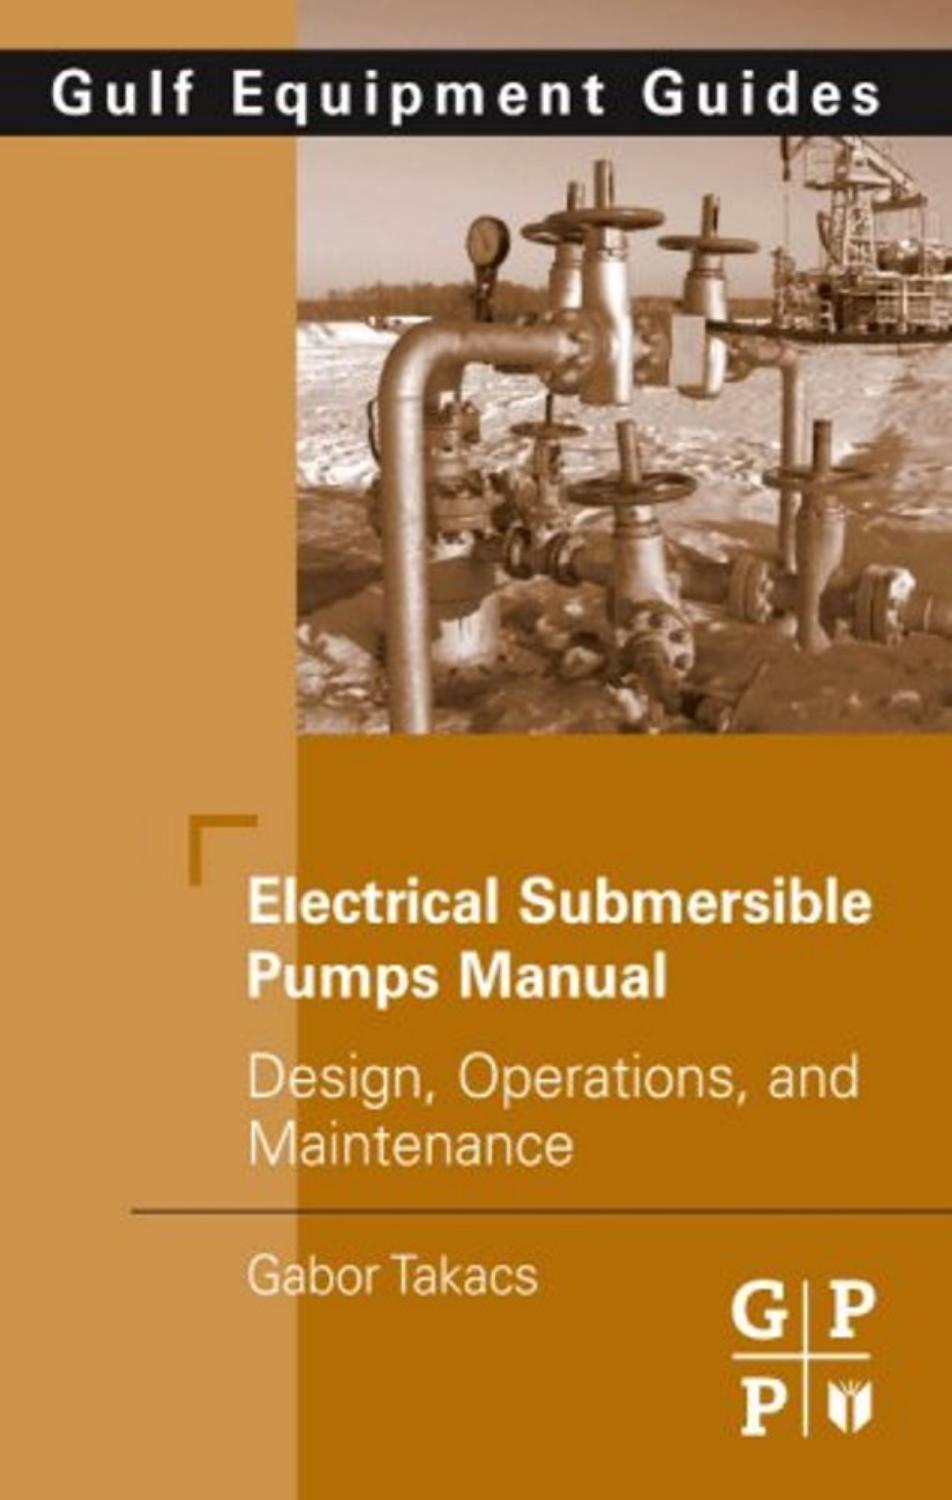 Electrical Submersible Pumps Manual Design Operations And Wiring Diagram Schematics For The 18500 To 36000 Btu Ac Unit With 2 Maintenance By Norberto Furtman Issuu